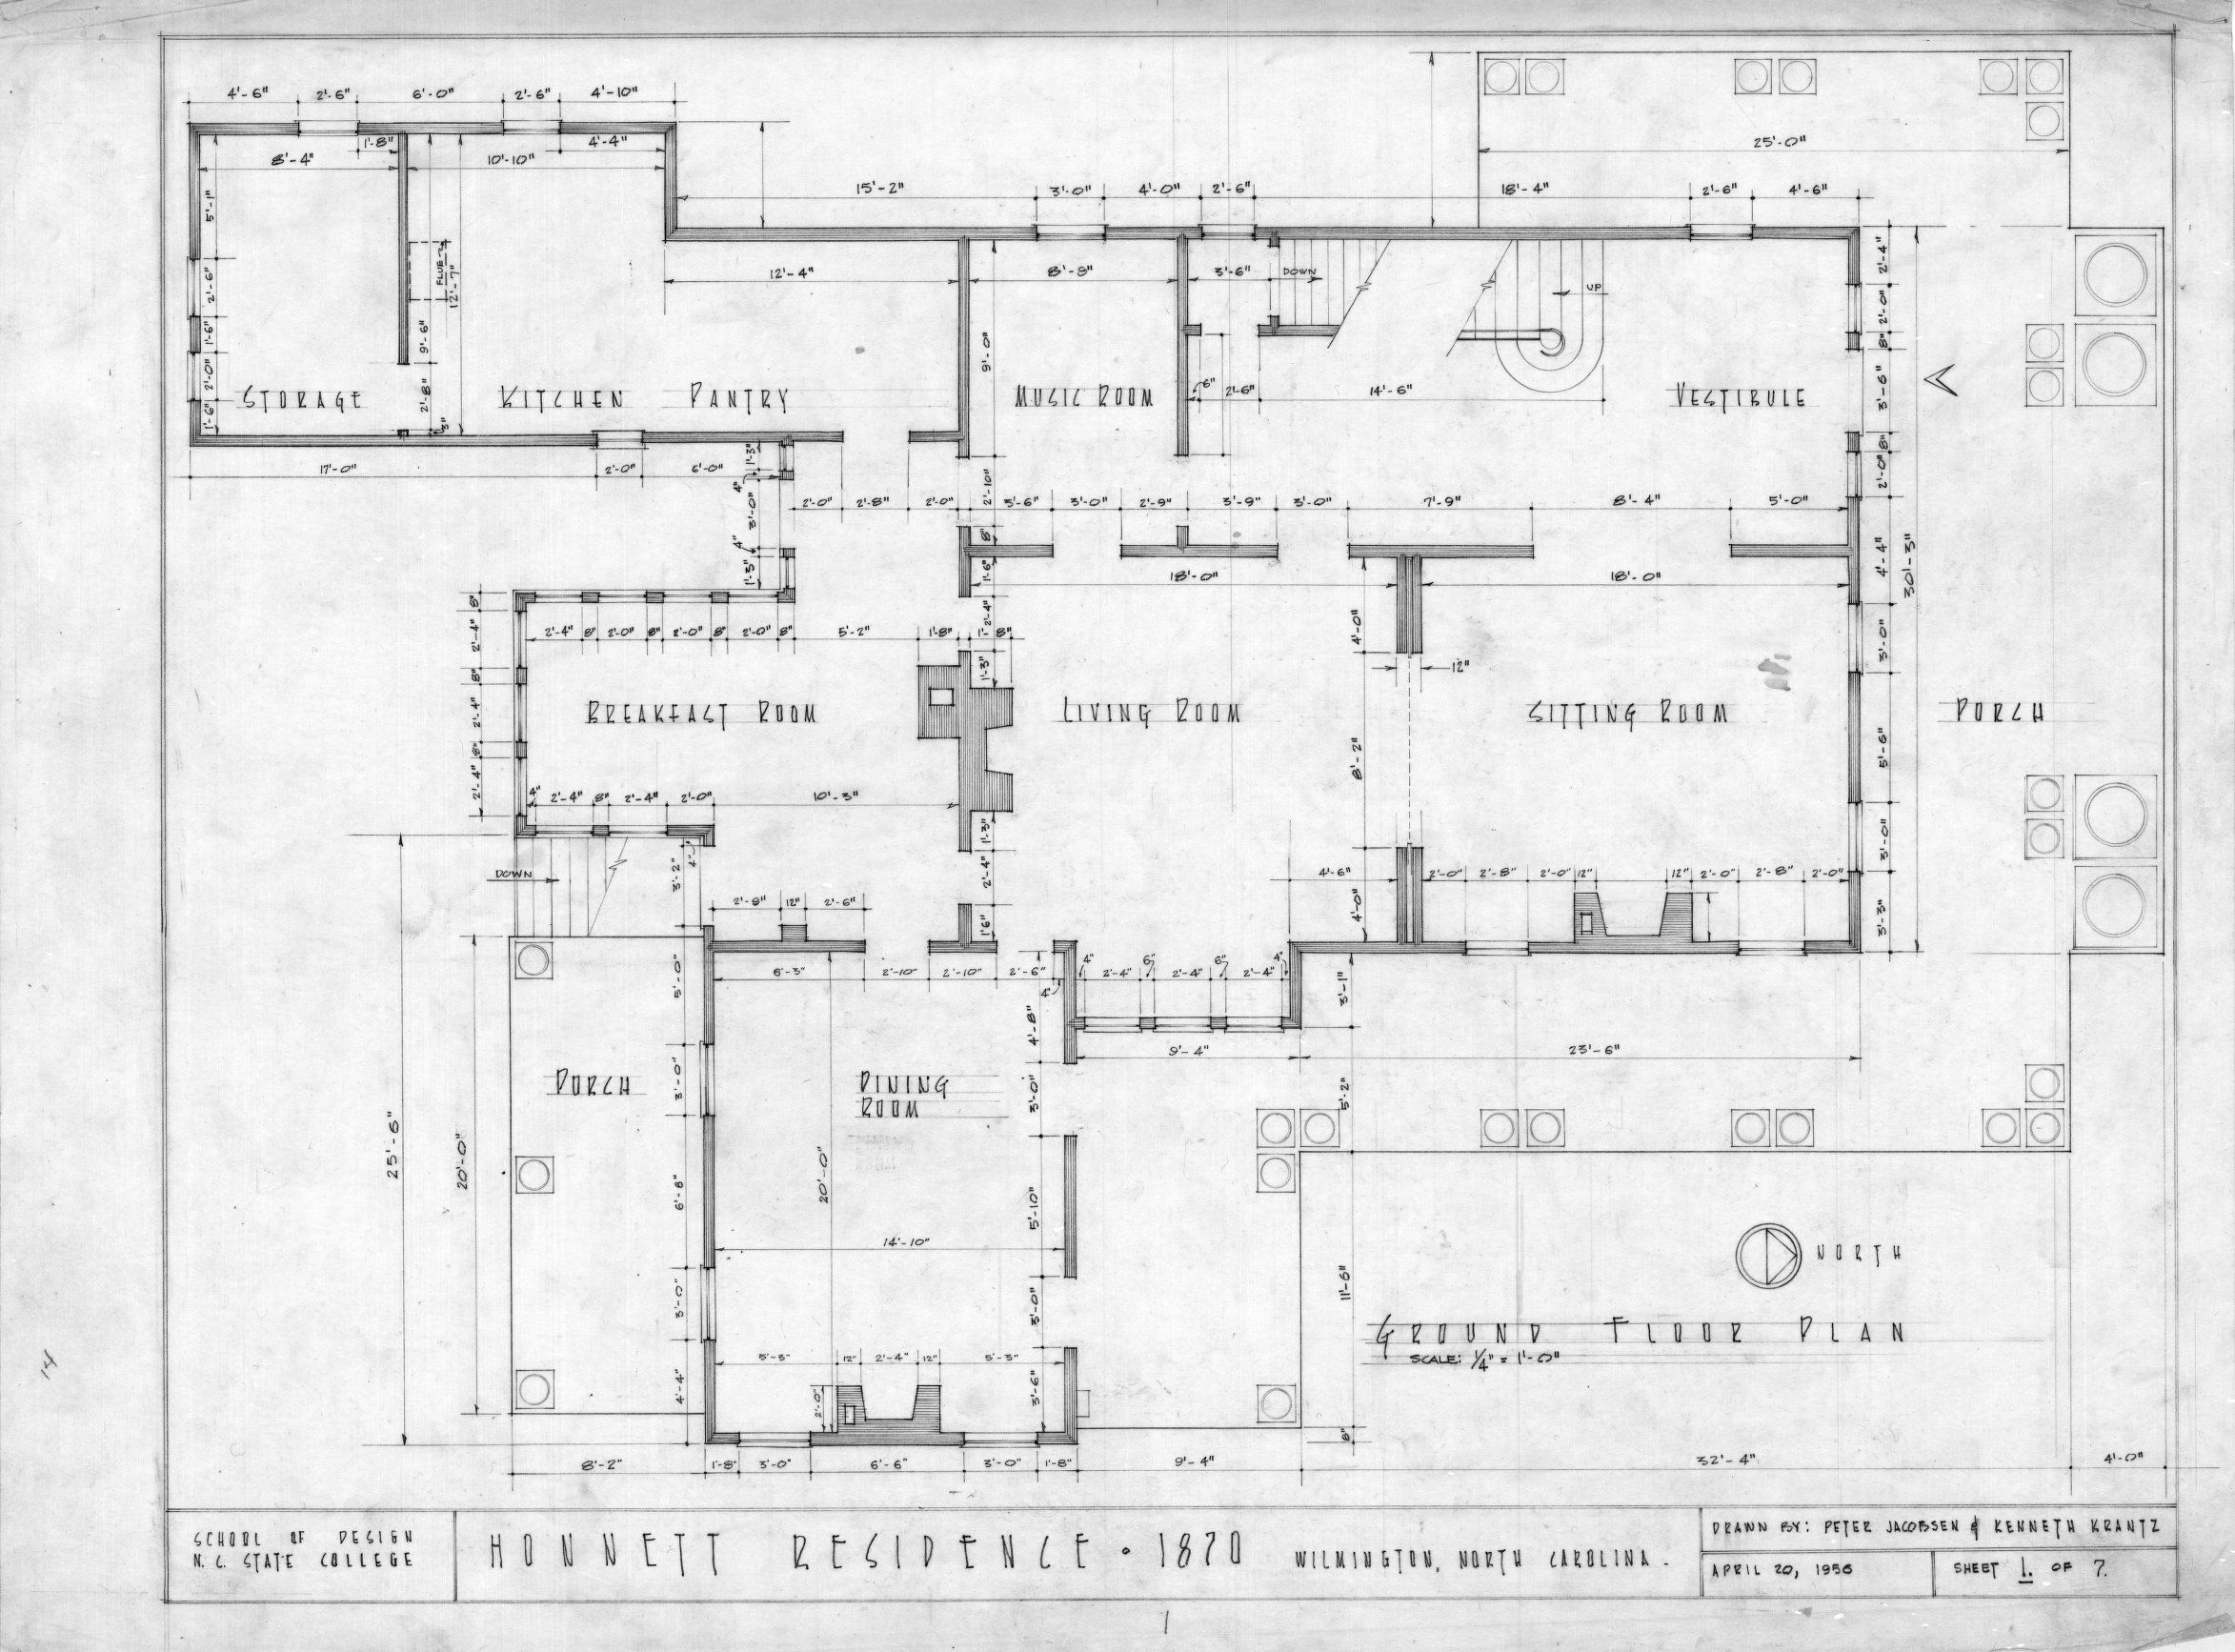 historic italianate floor plans google search khane ye ForHistoric Italianate Floor Plans